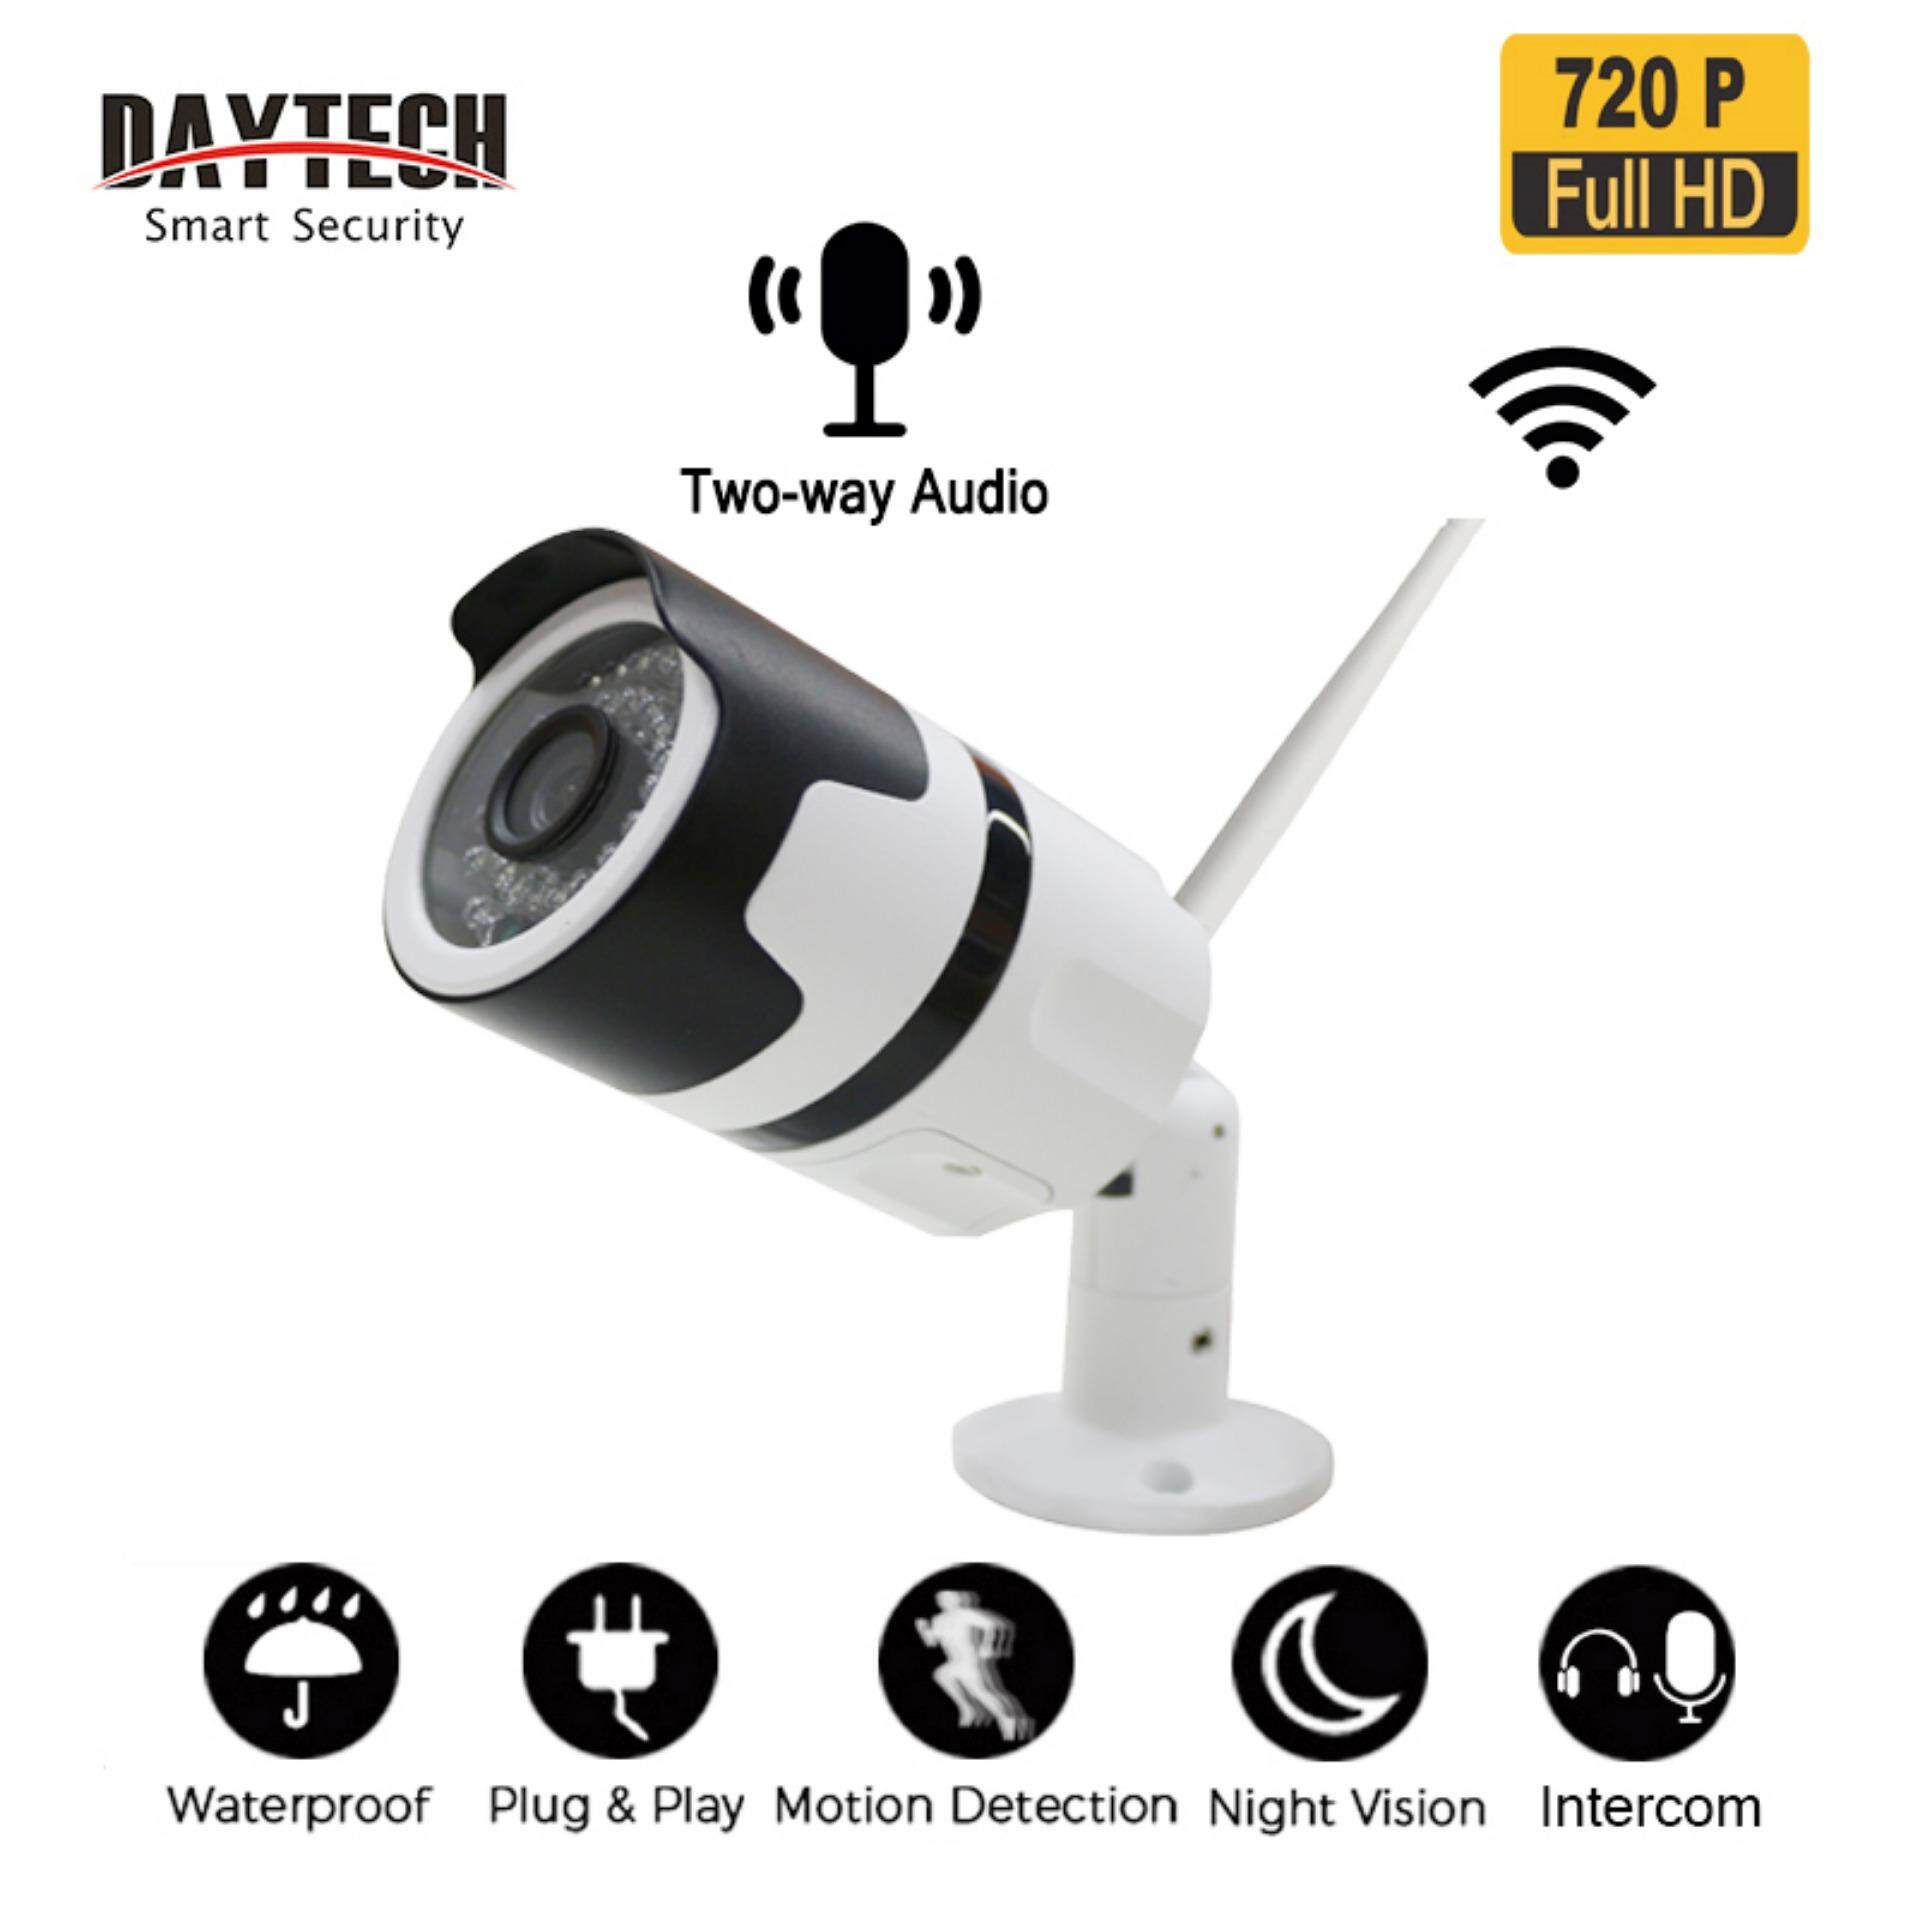 Daytech Outdoor Ip Camera Cctv 720p/1080p Hd Wifi Wireless Surveillance Network Security Camera Waterproof Two Way Audio Night Vision(dt-H03) By Daytech Official Store.